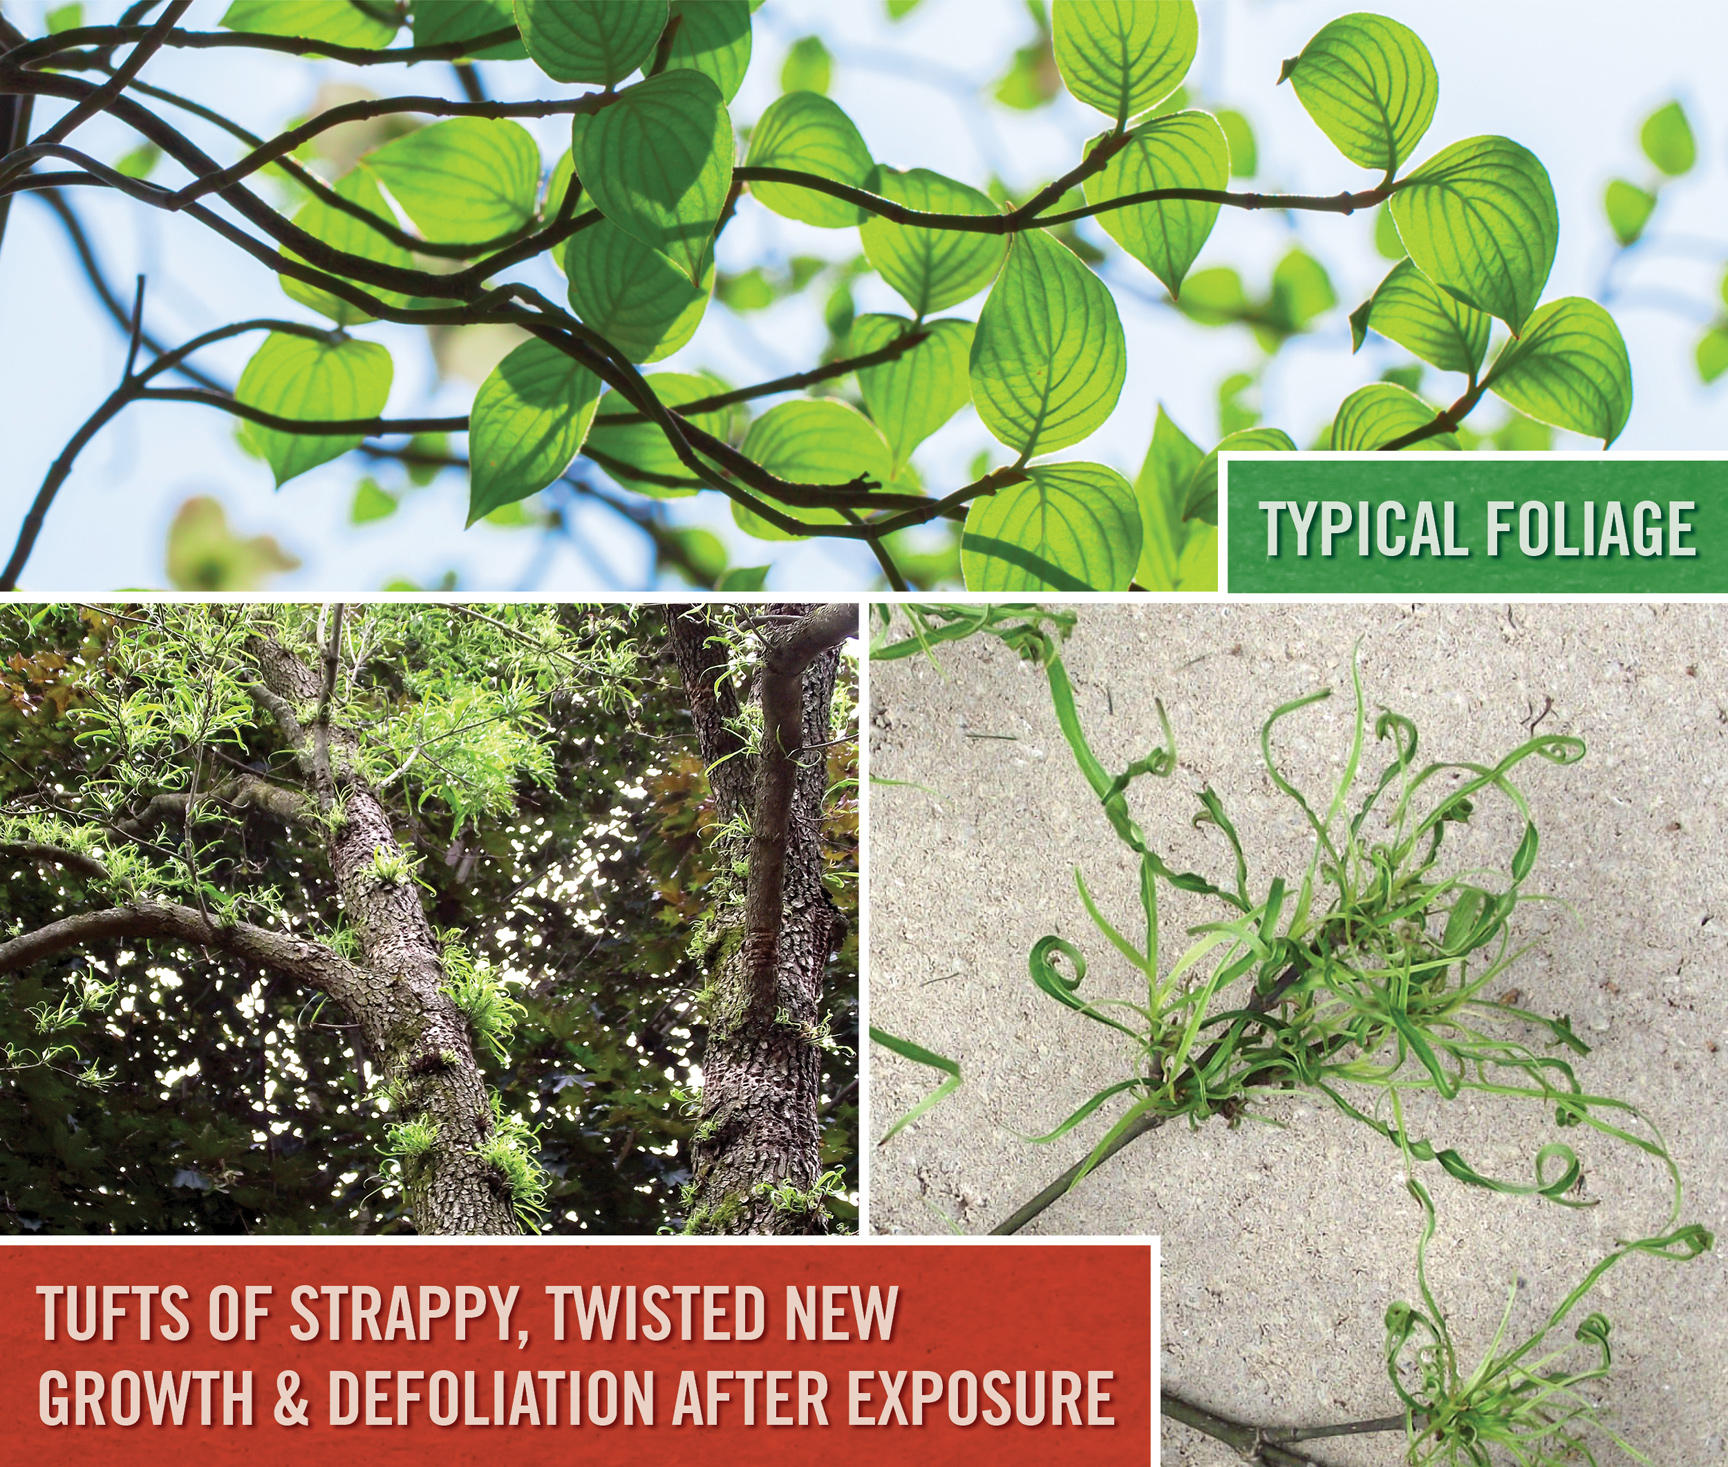 dogwood herbicide damage - Using Herbicides Near Trees and Shrubs